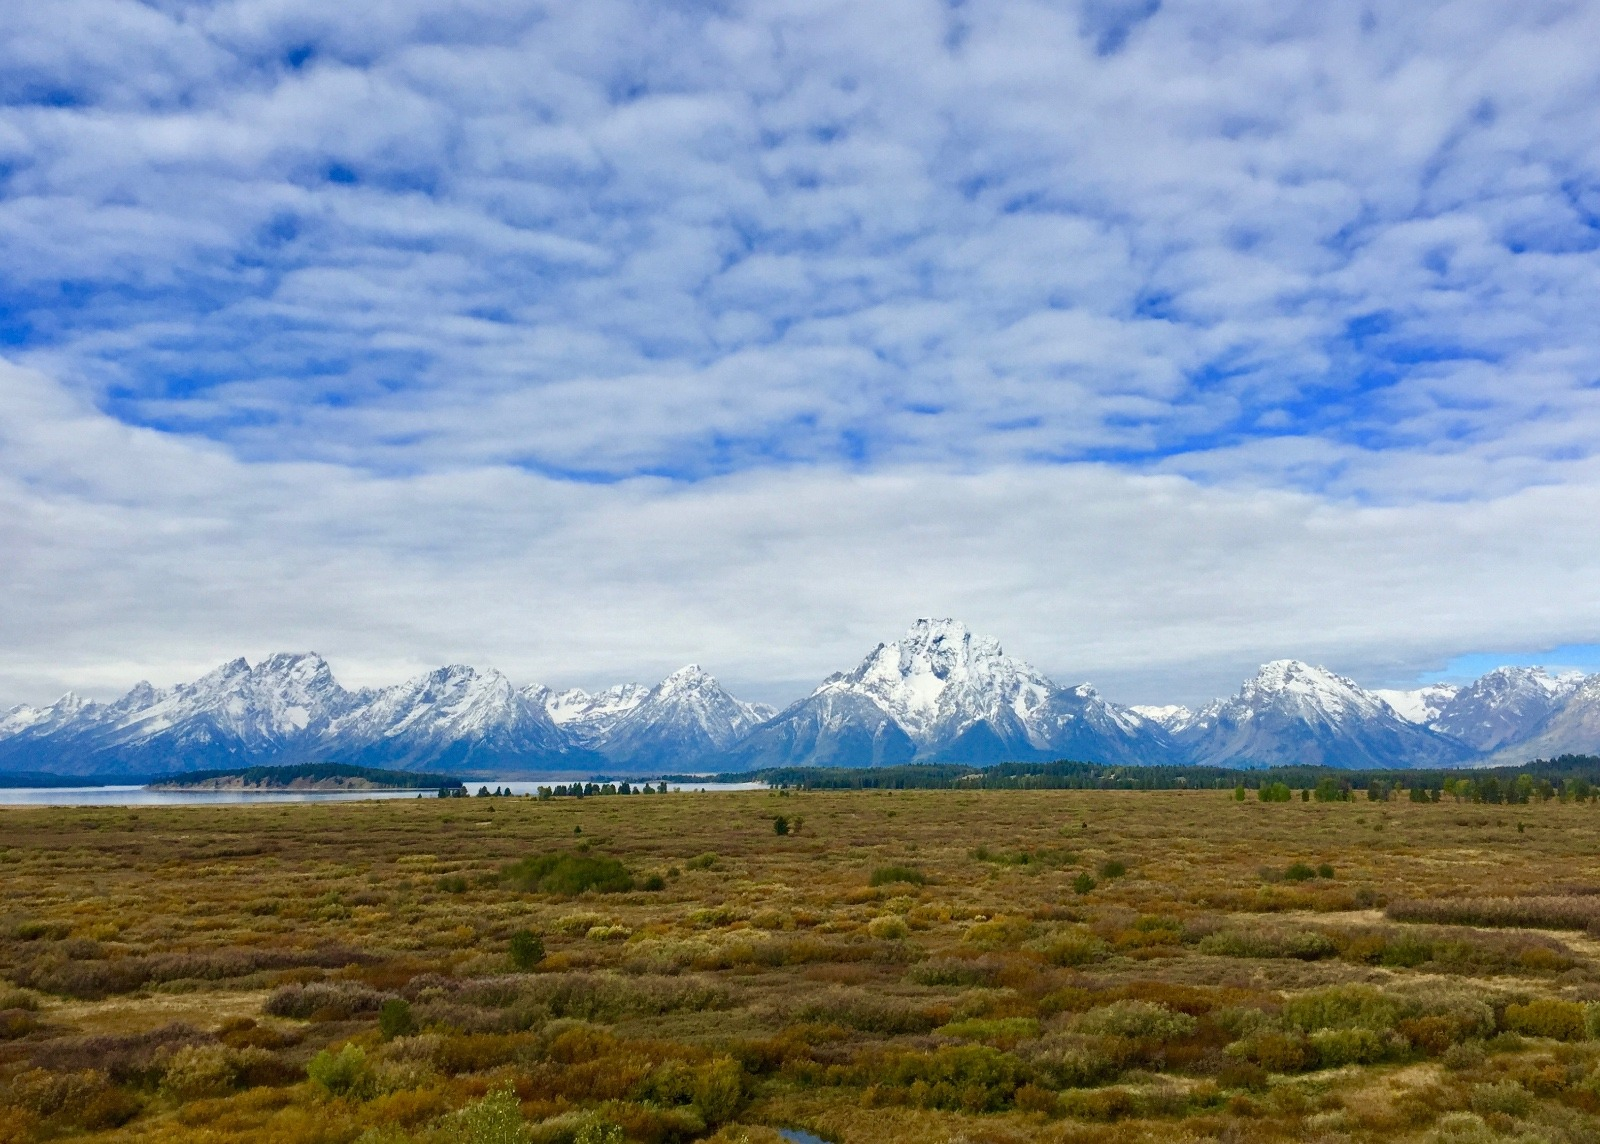 The Tetons from east of Jackson Lake.  Imagine if these flats, today teeming with wildlife and serving a visual sightline to the mountains, were instead covered with a residential subdivision or commercial development all the way almost to the water's edge. While today these lands are treasured as a vital part of Grand Teton National Park's character, some fought against landscape protection.  Photo by Todd Wilkinson